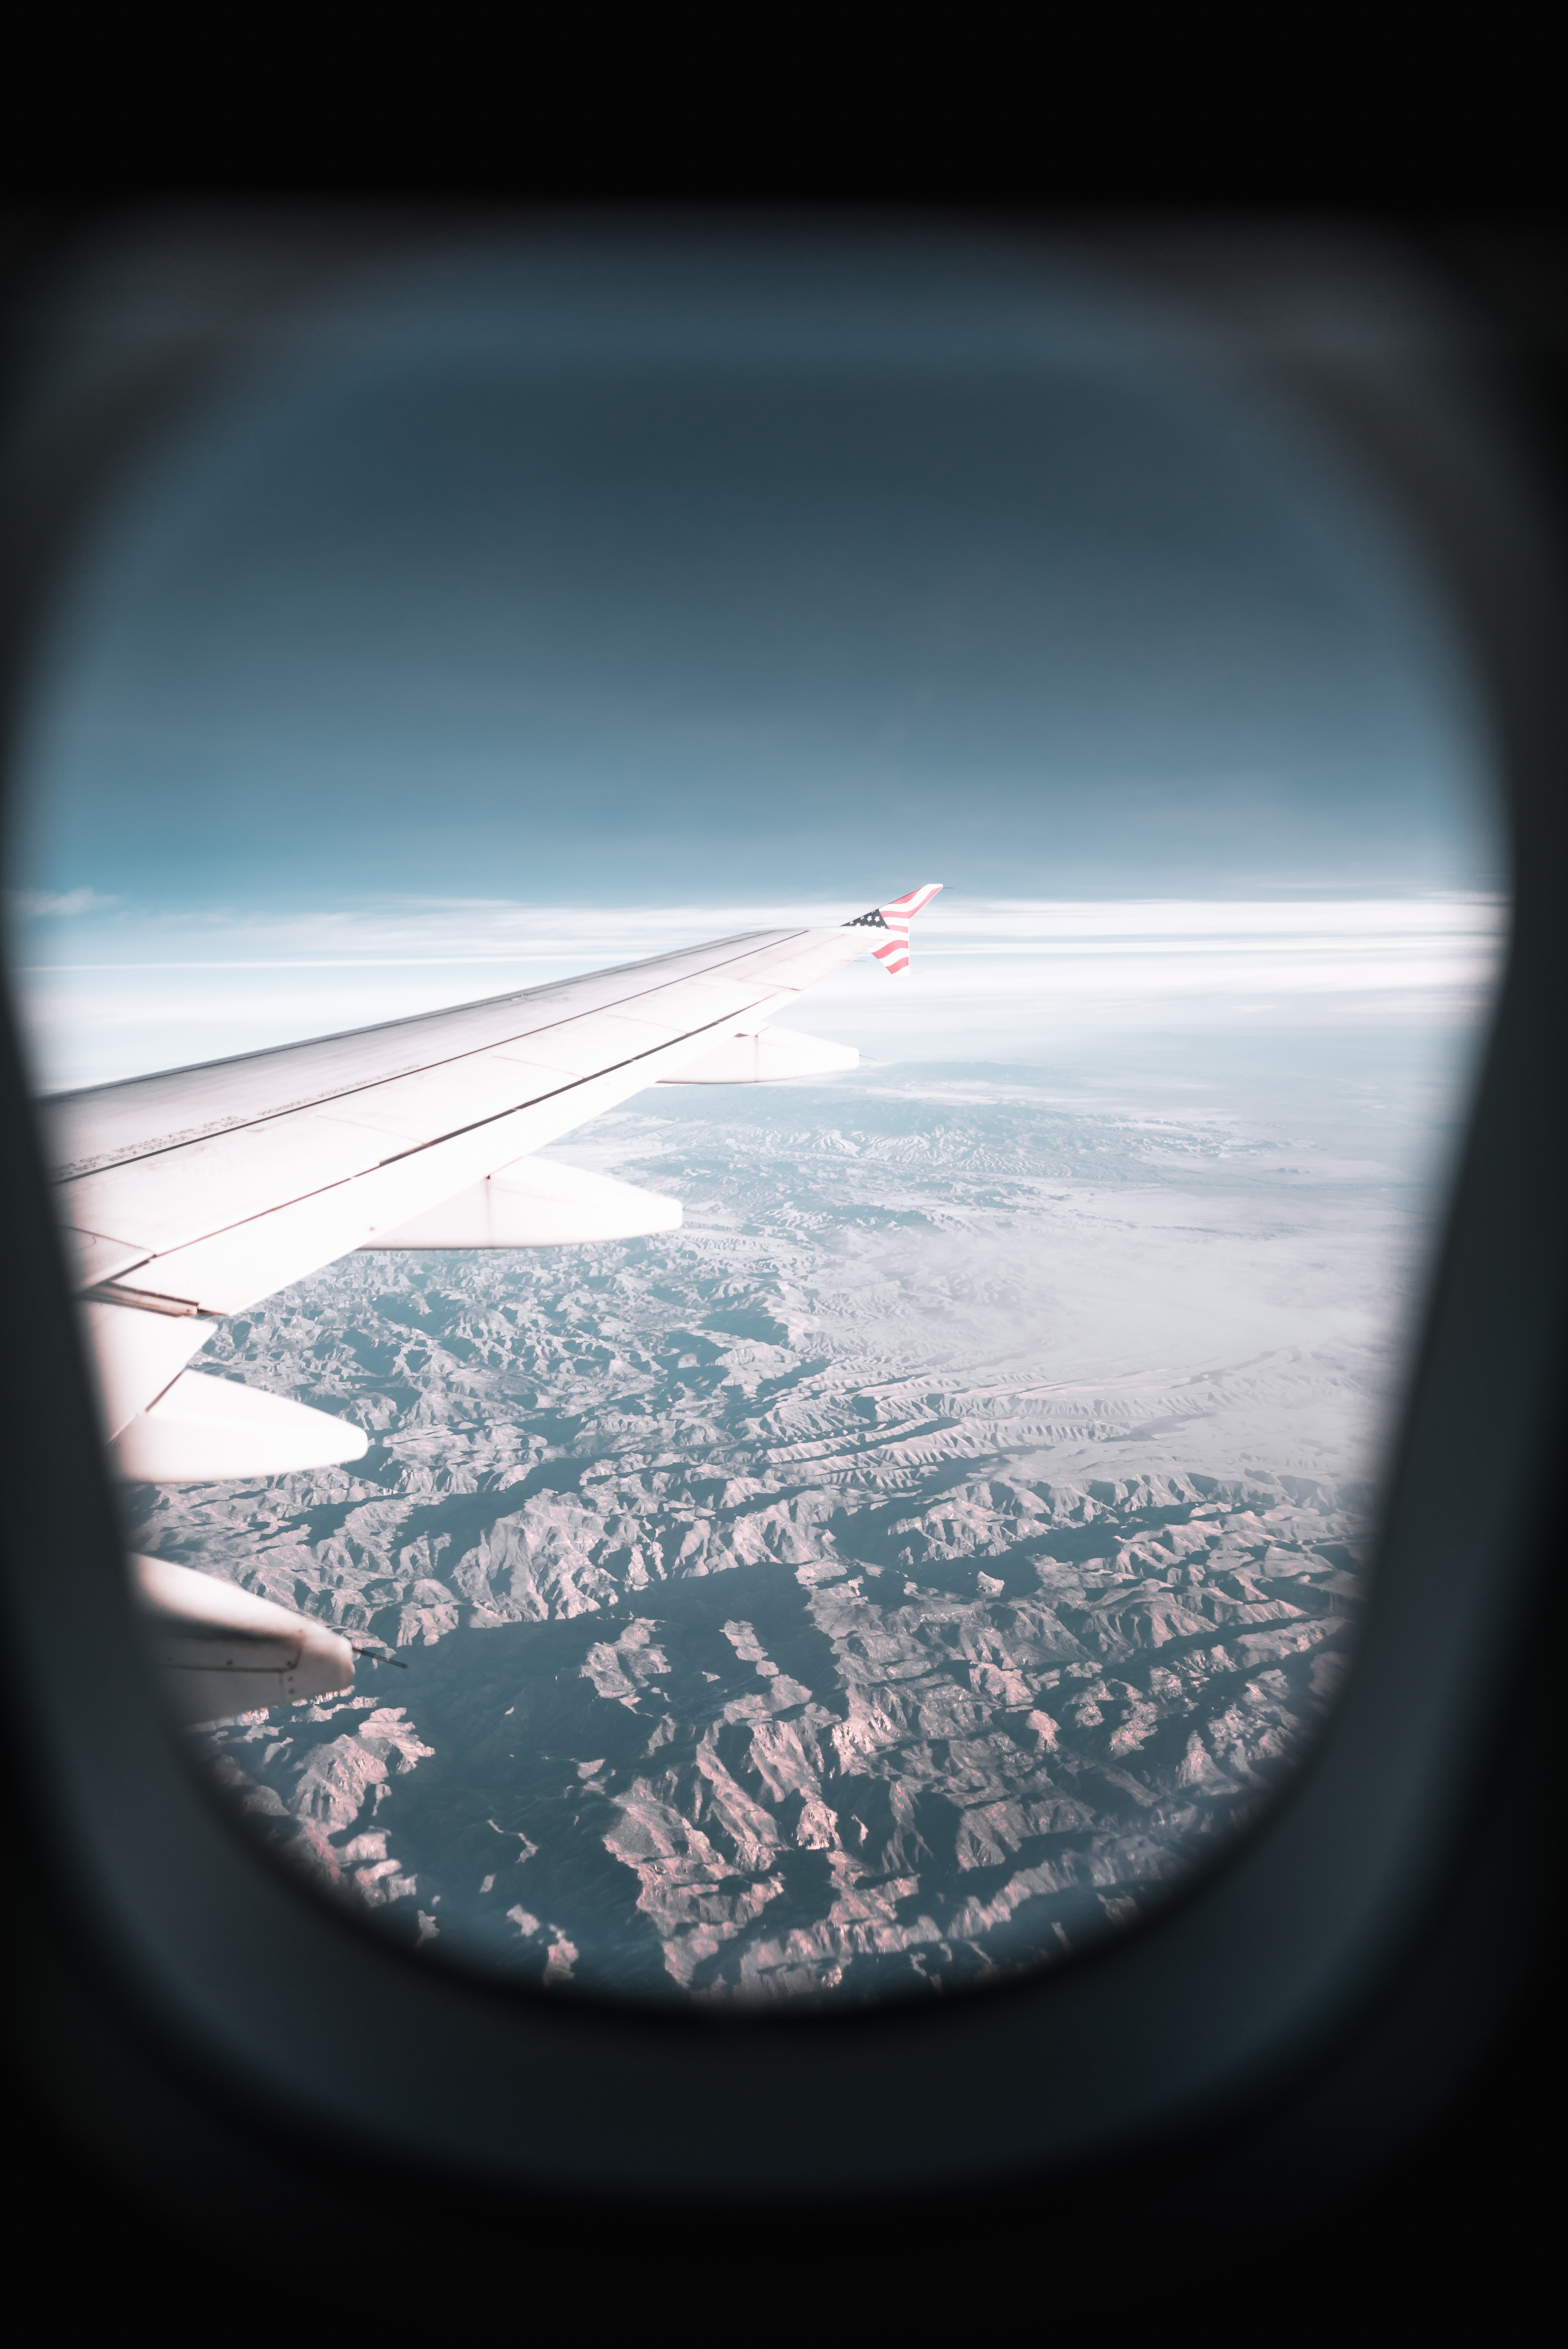 airplane window view of airplane's wing and mountains during day